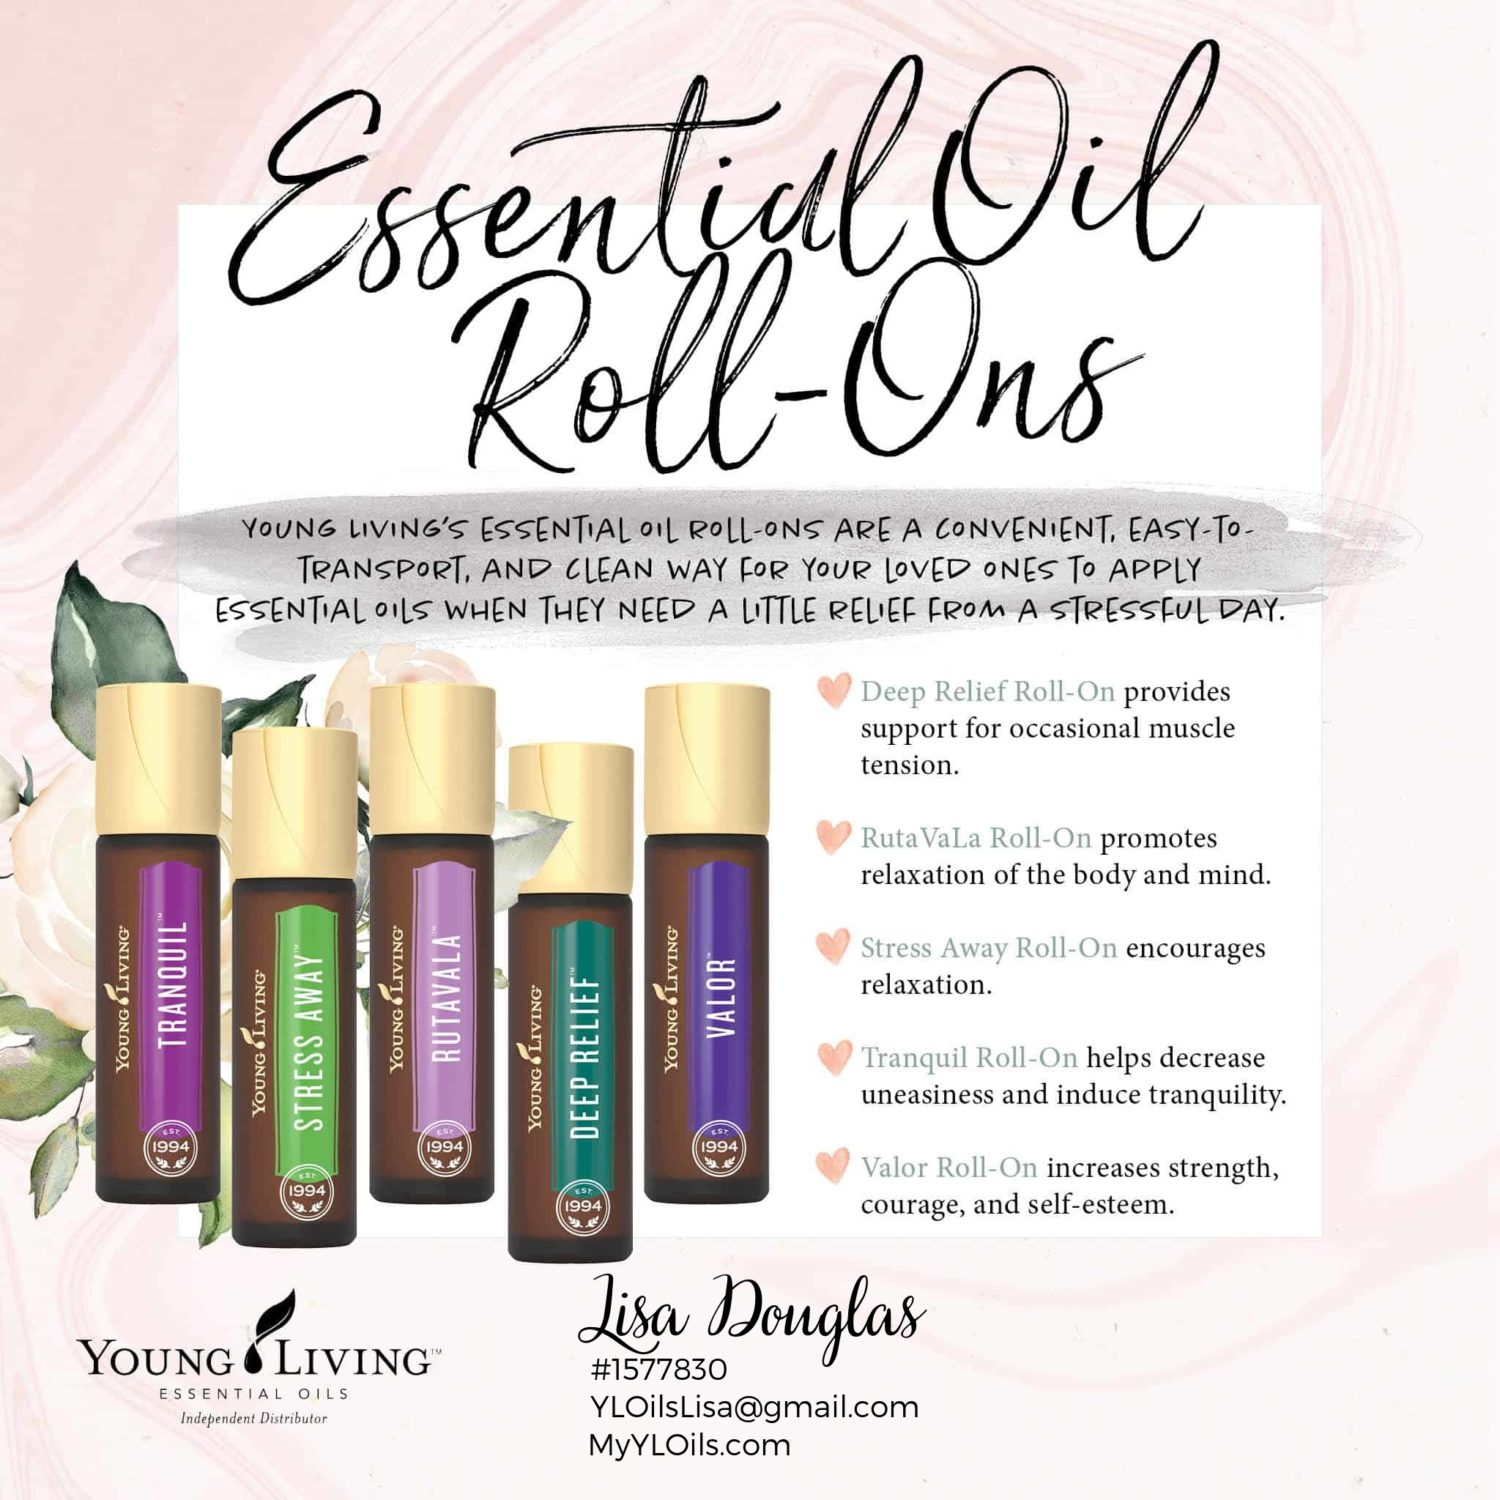 Valentine's Day Essential Oils Gift Guide - Roll-Ons